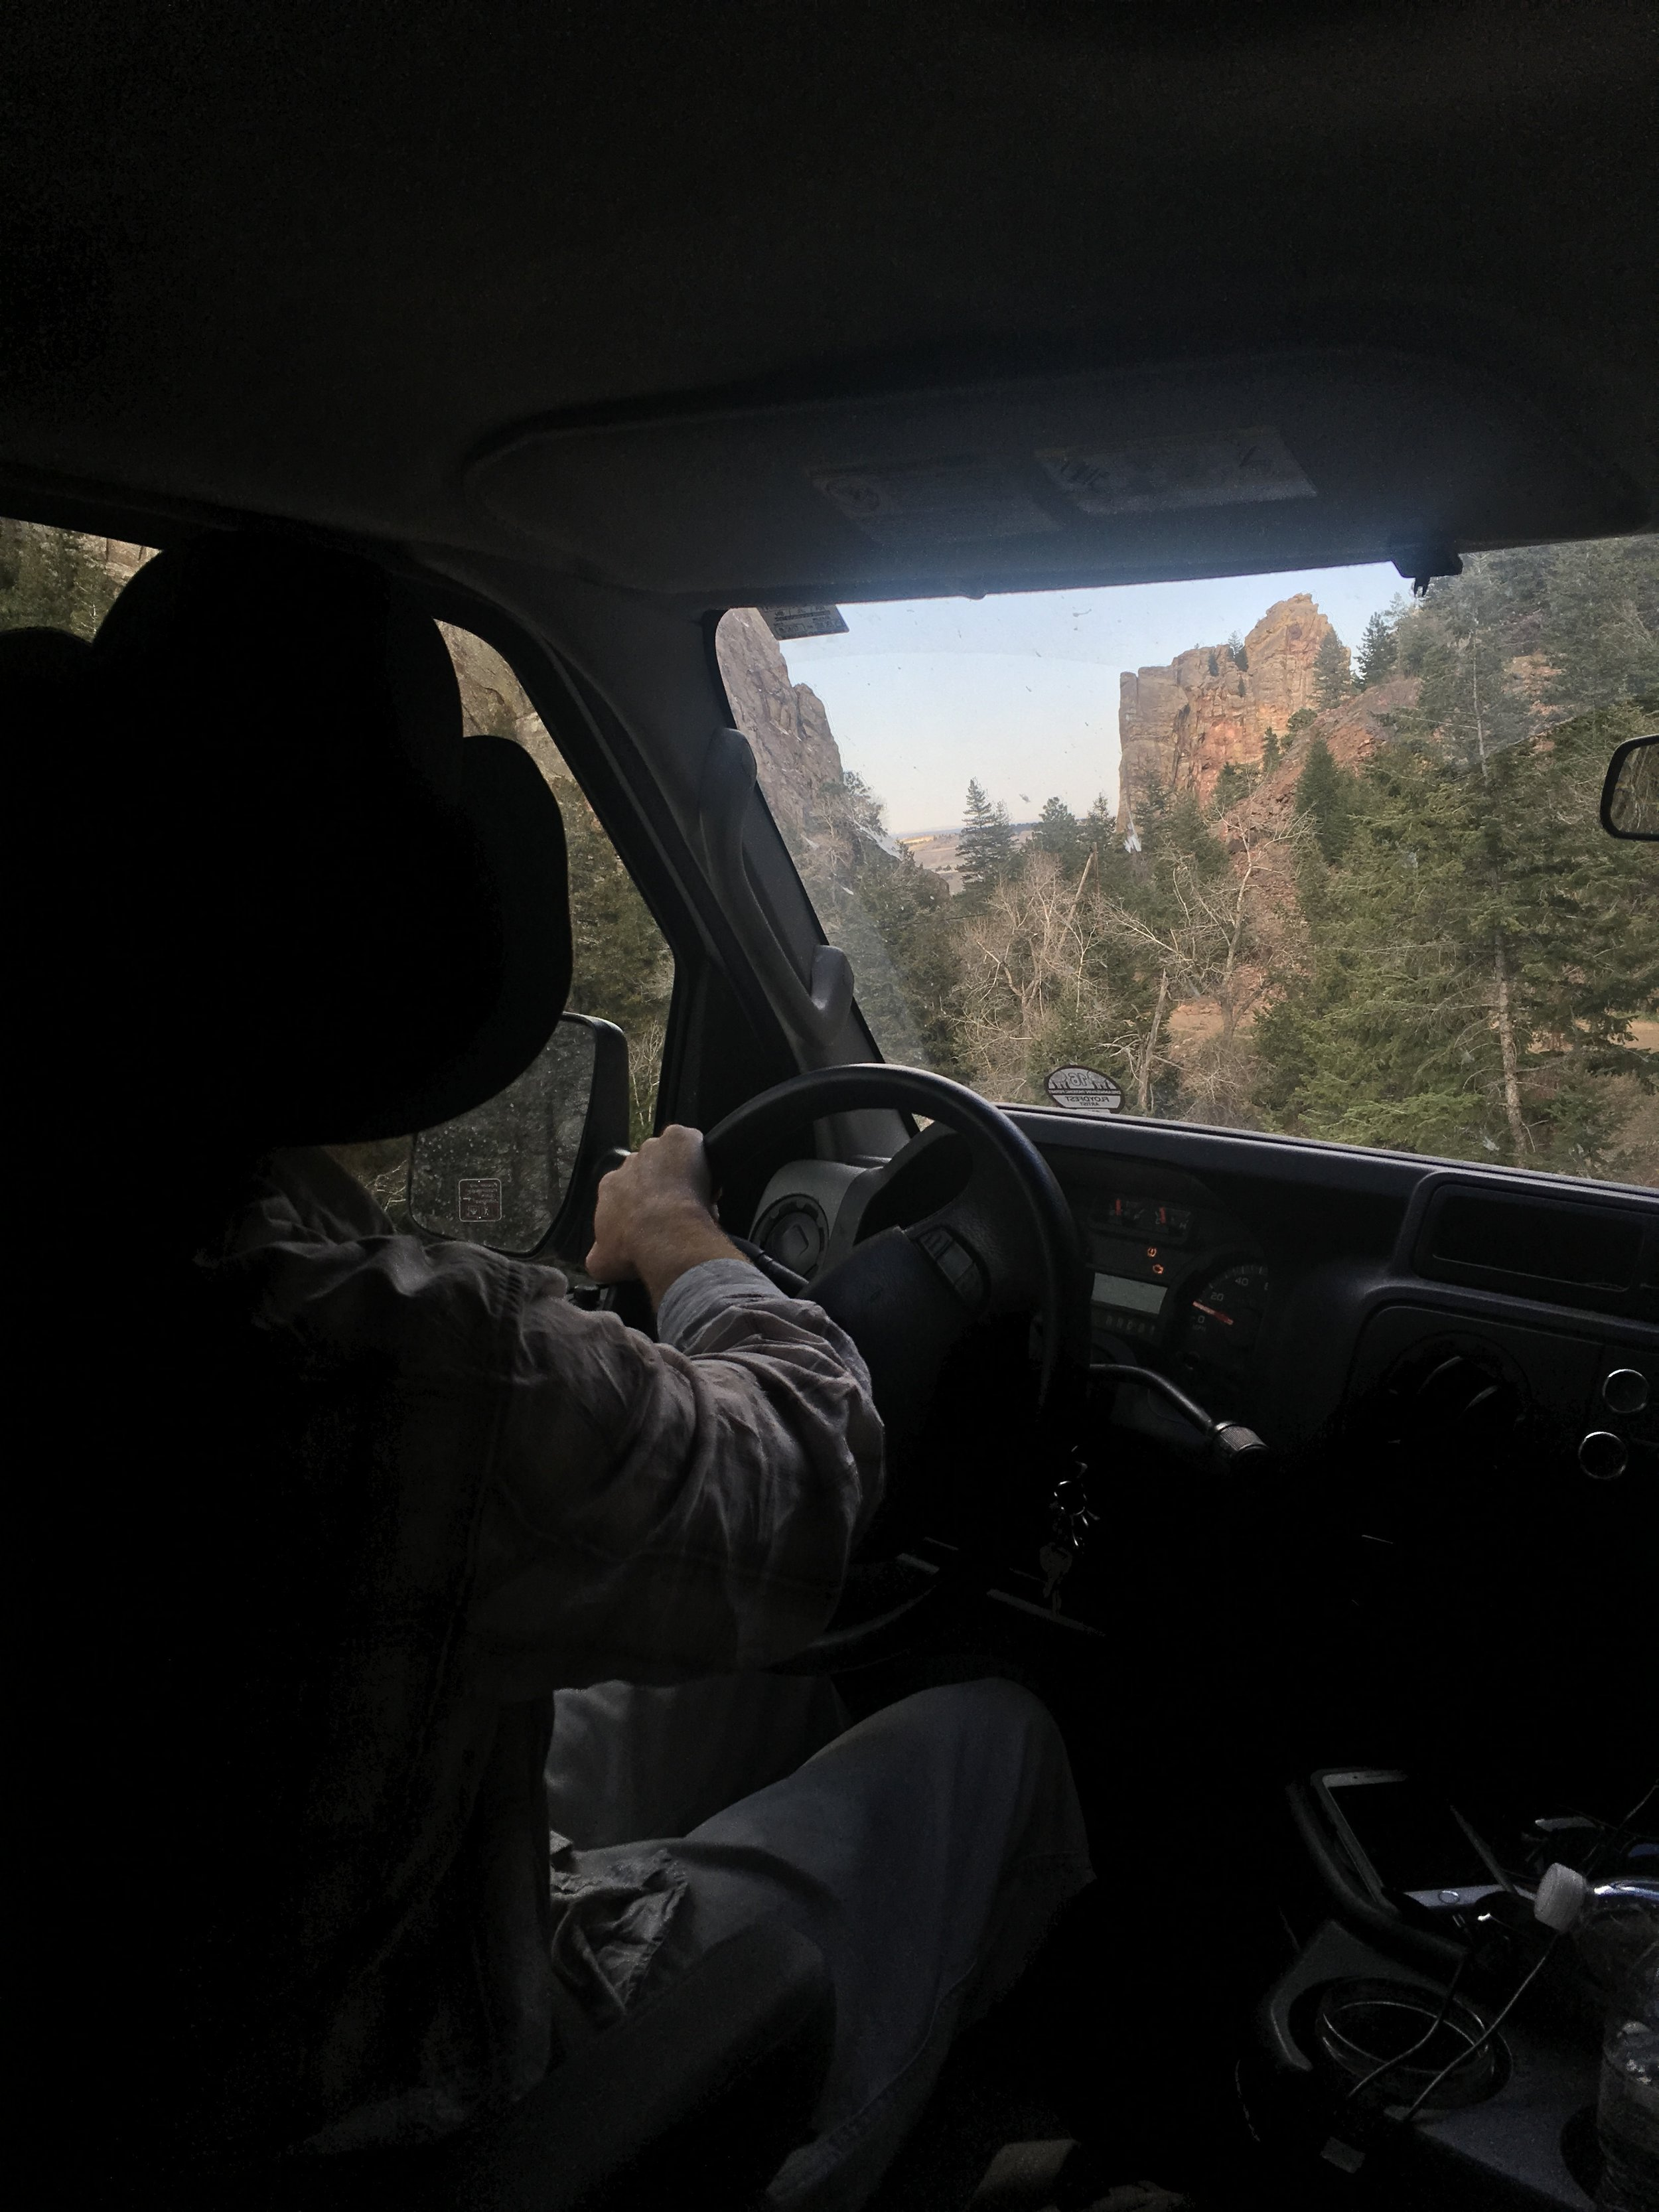 Cruisin' around in Colorado, checkin' out the sights